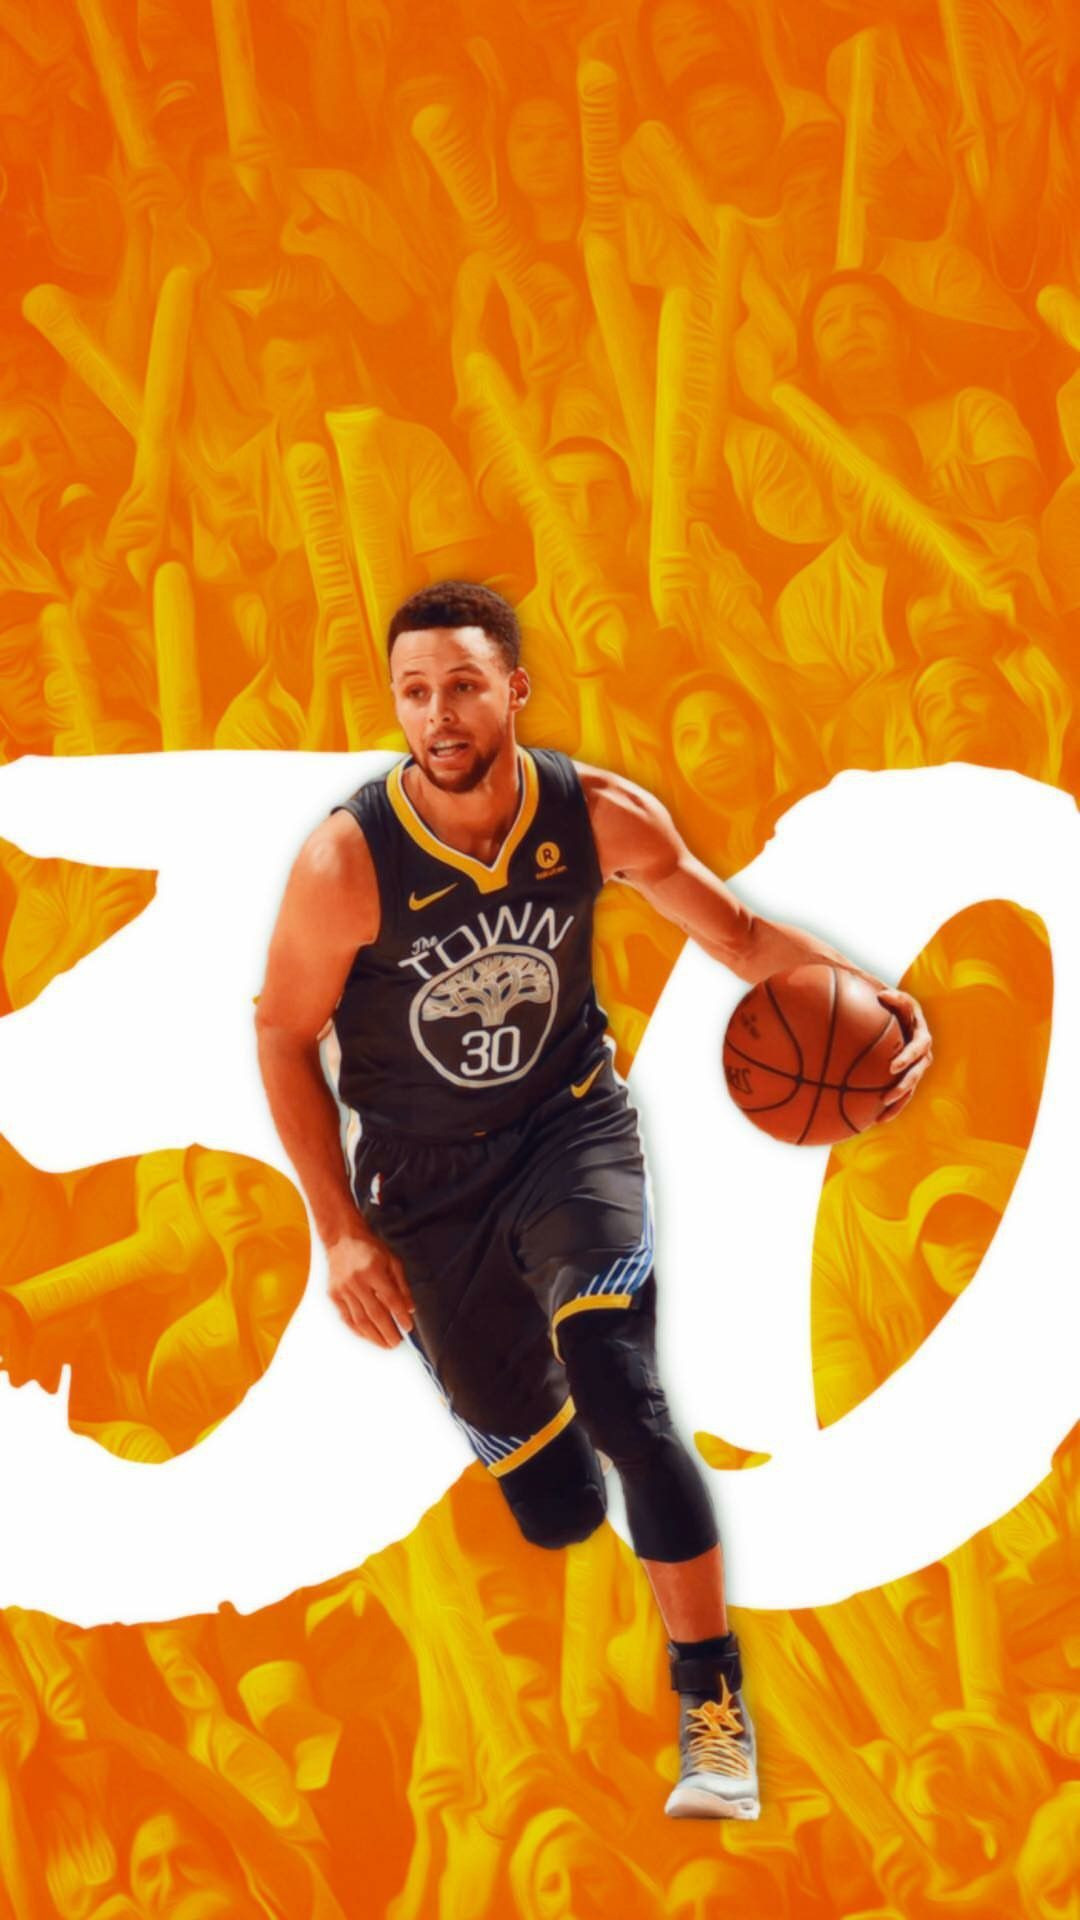 curry wallpaper background For Iphone Wallpaper